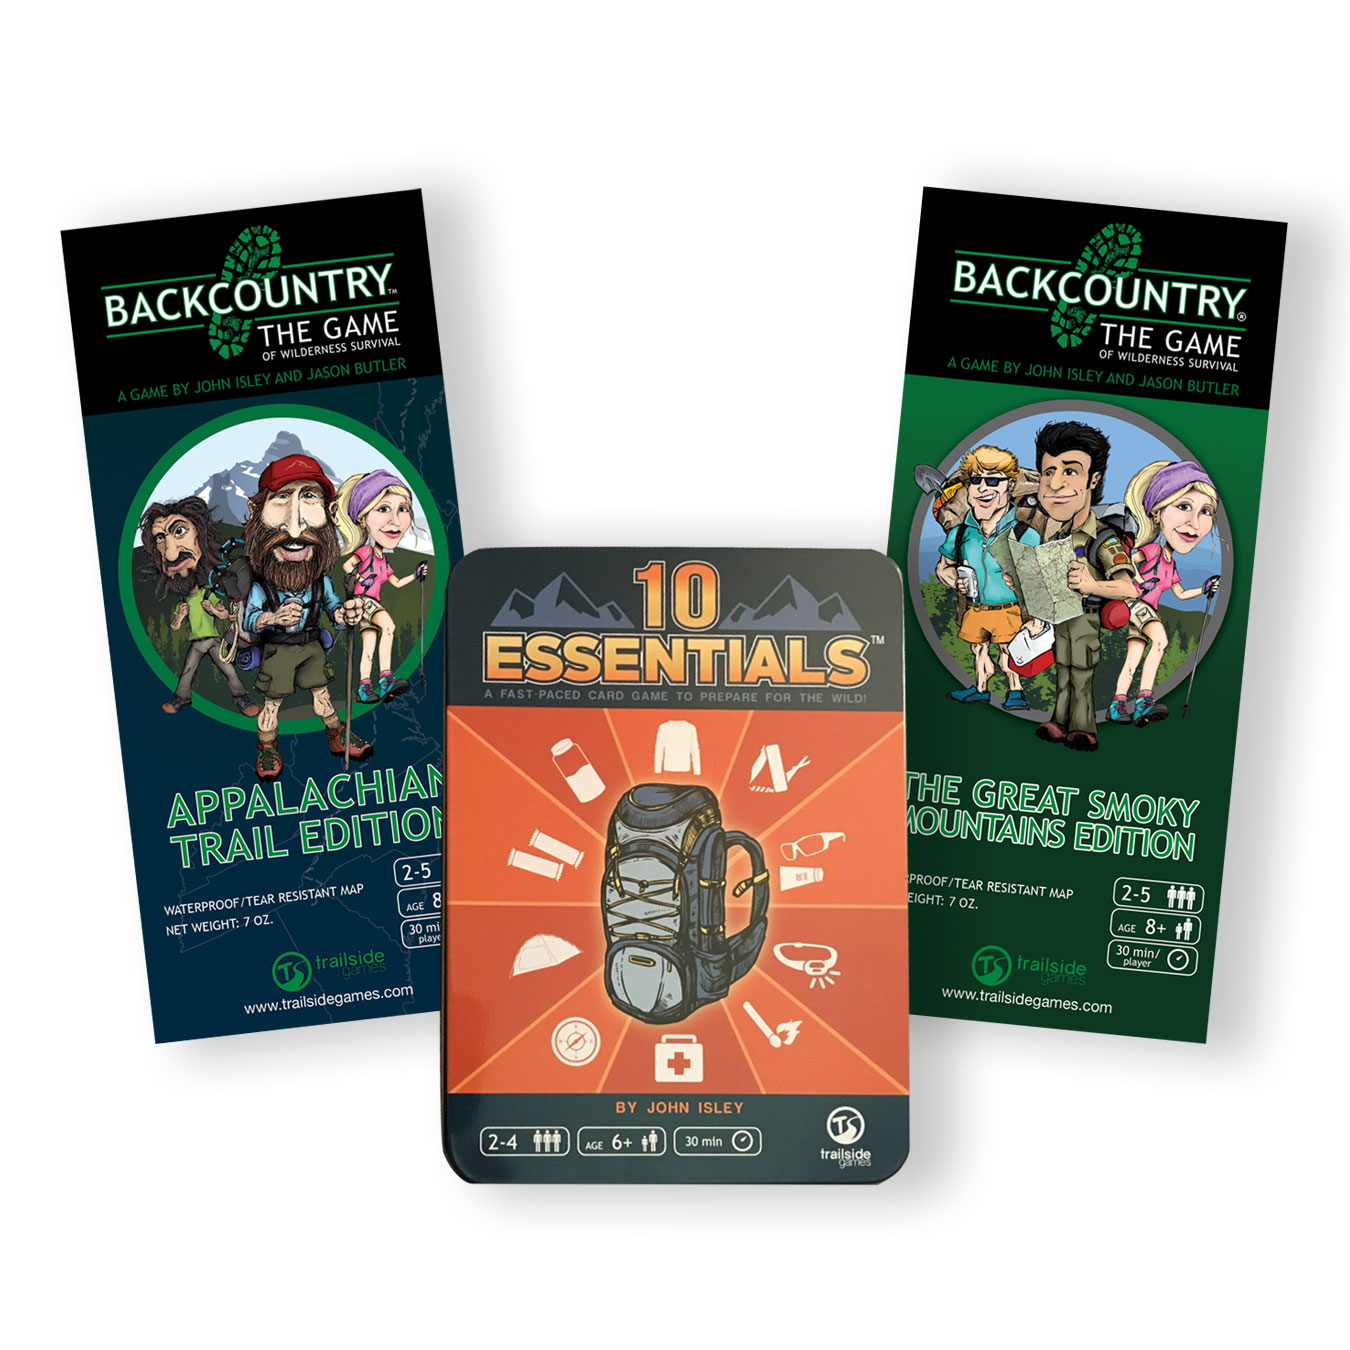 Go to the Backcountry Store